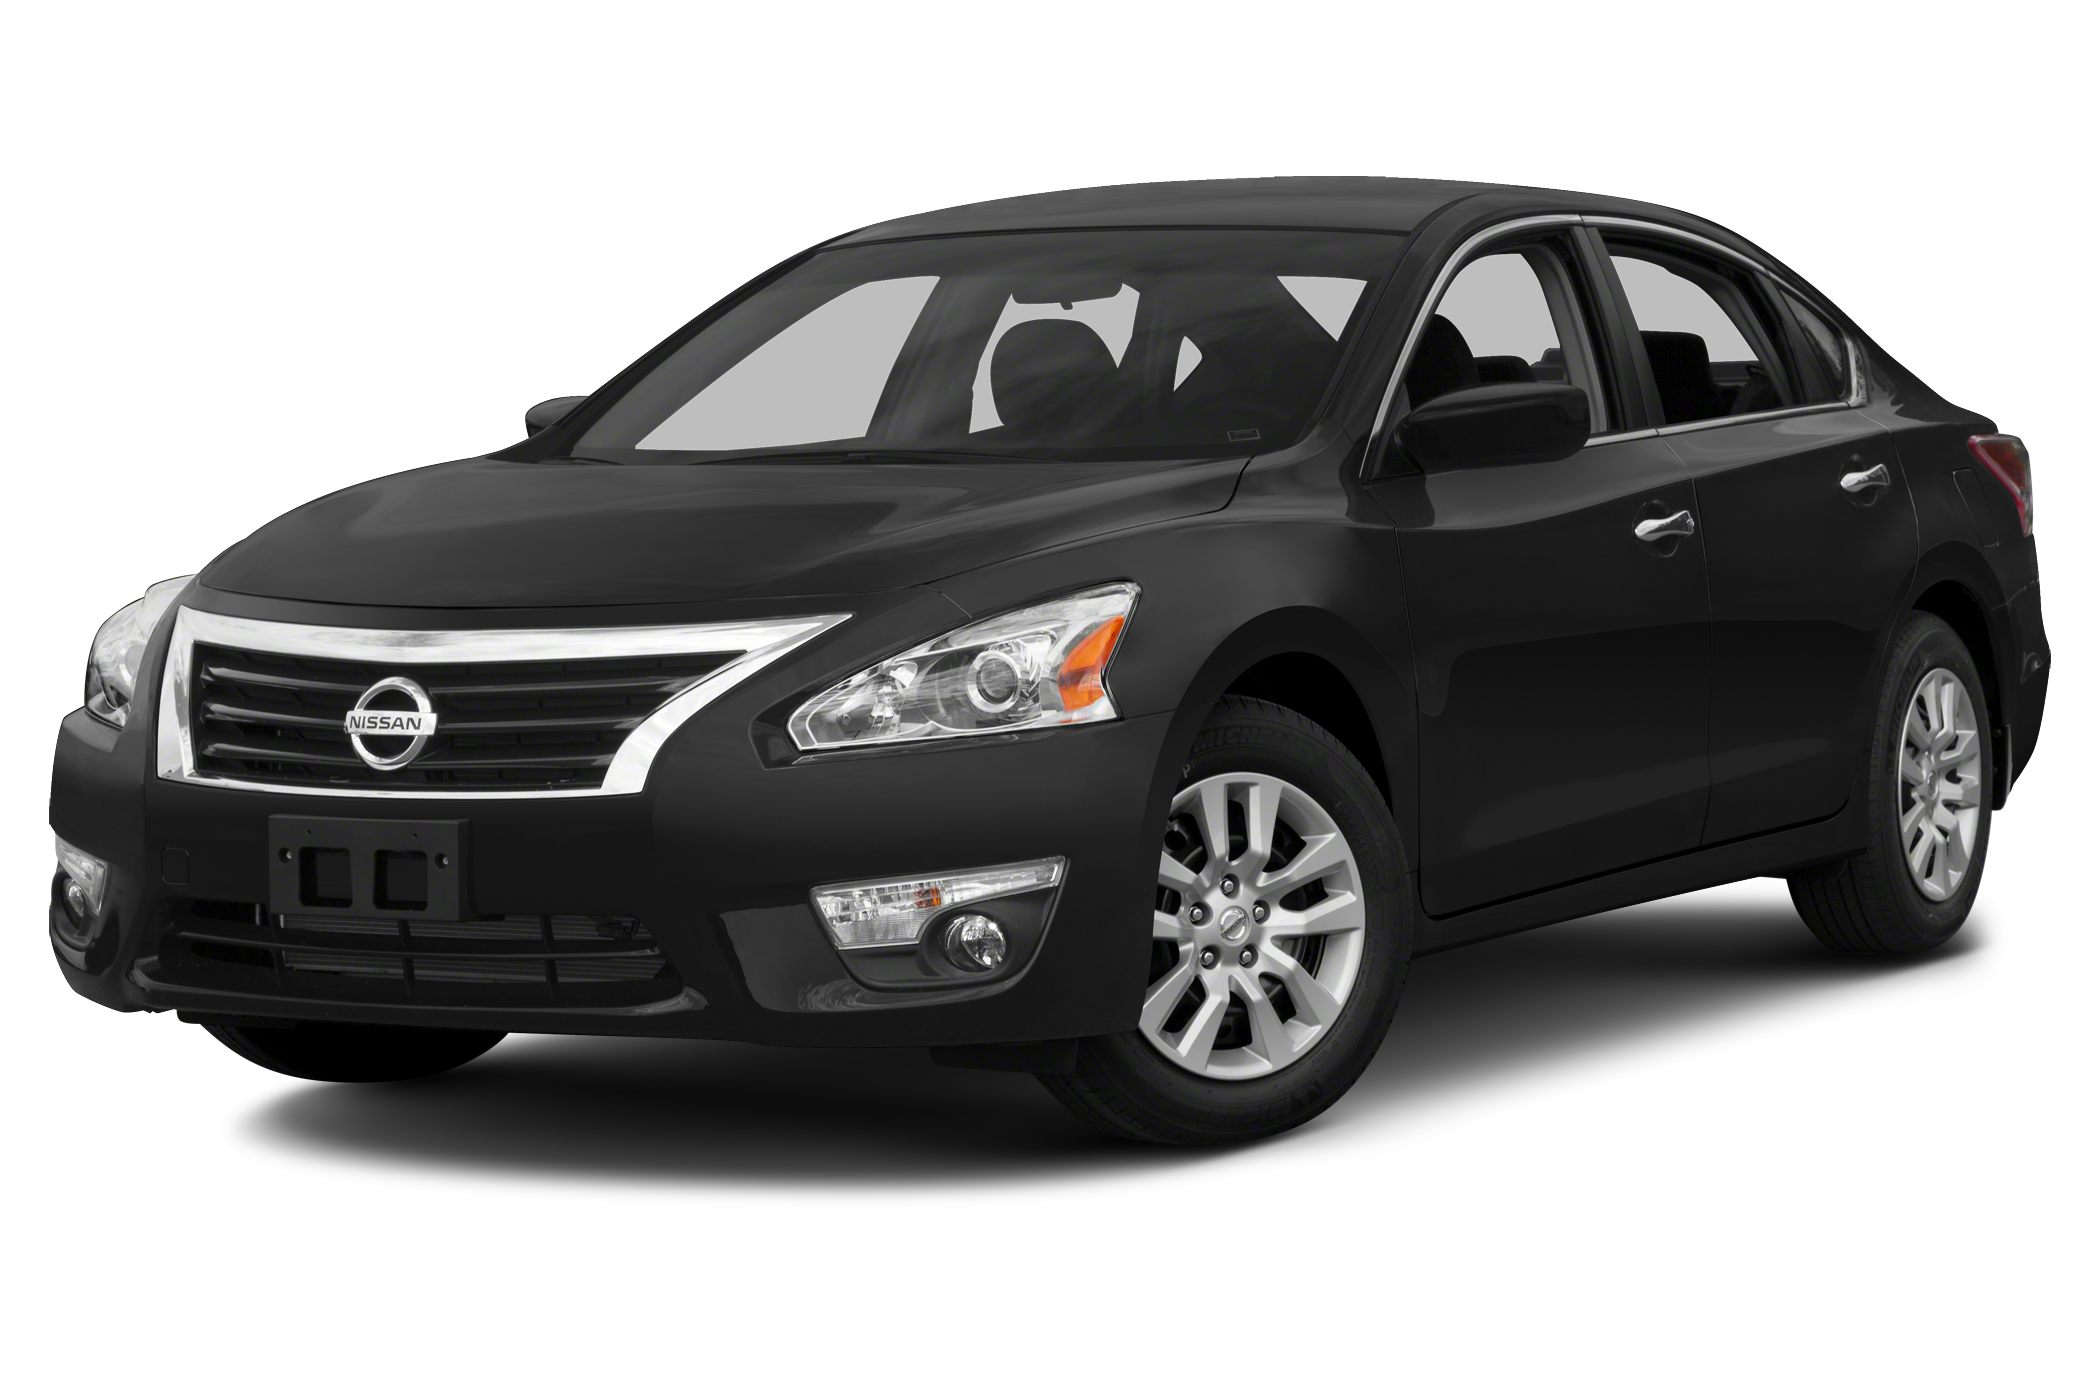 2015 Nissan Altima 2.5 S Sedan for sale in Erie for $24,315 with 4 miles.